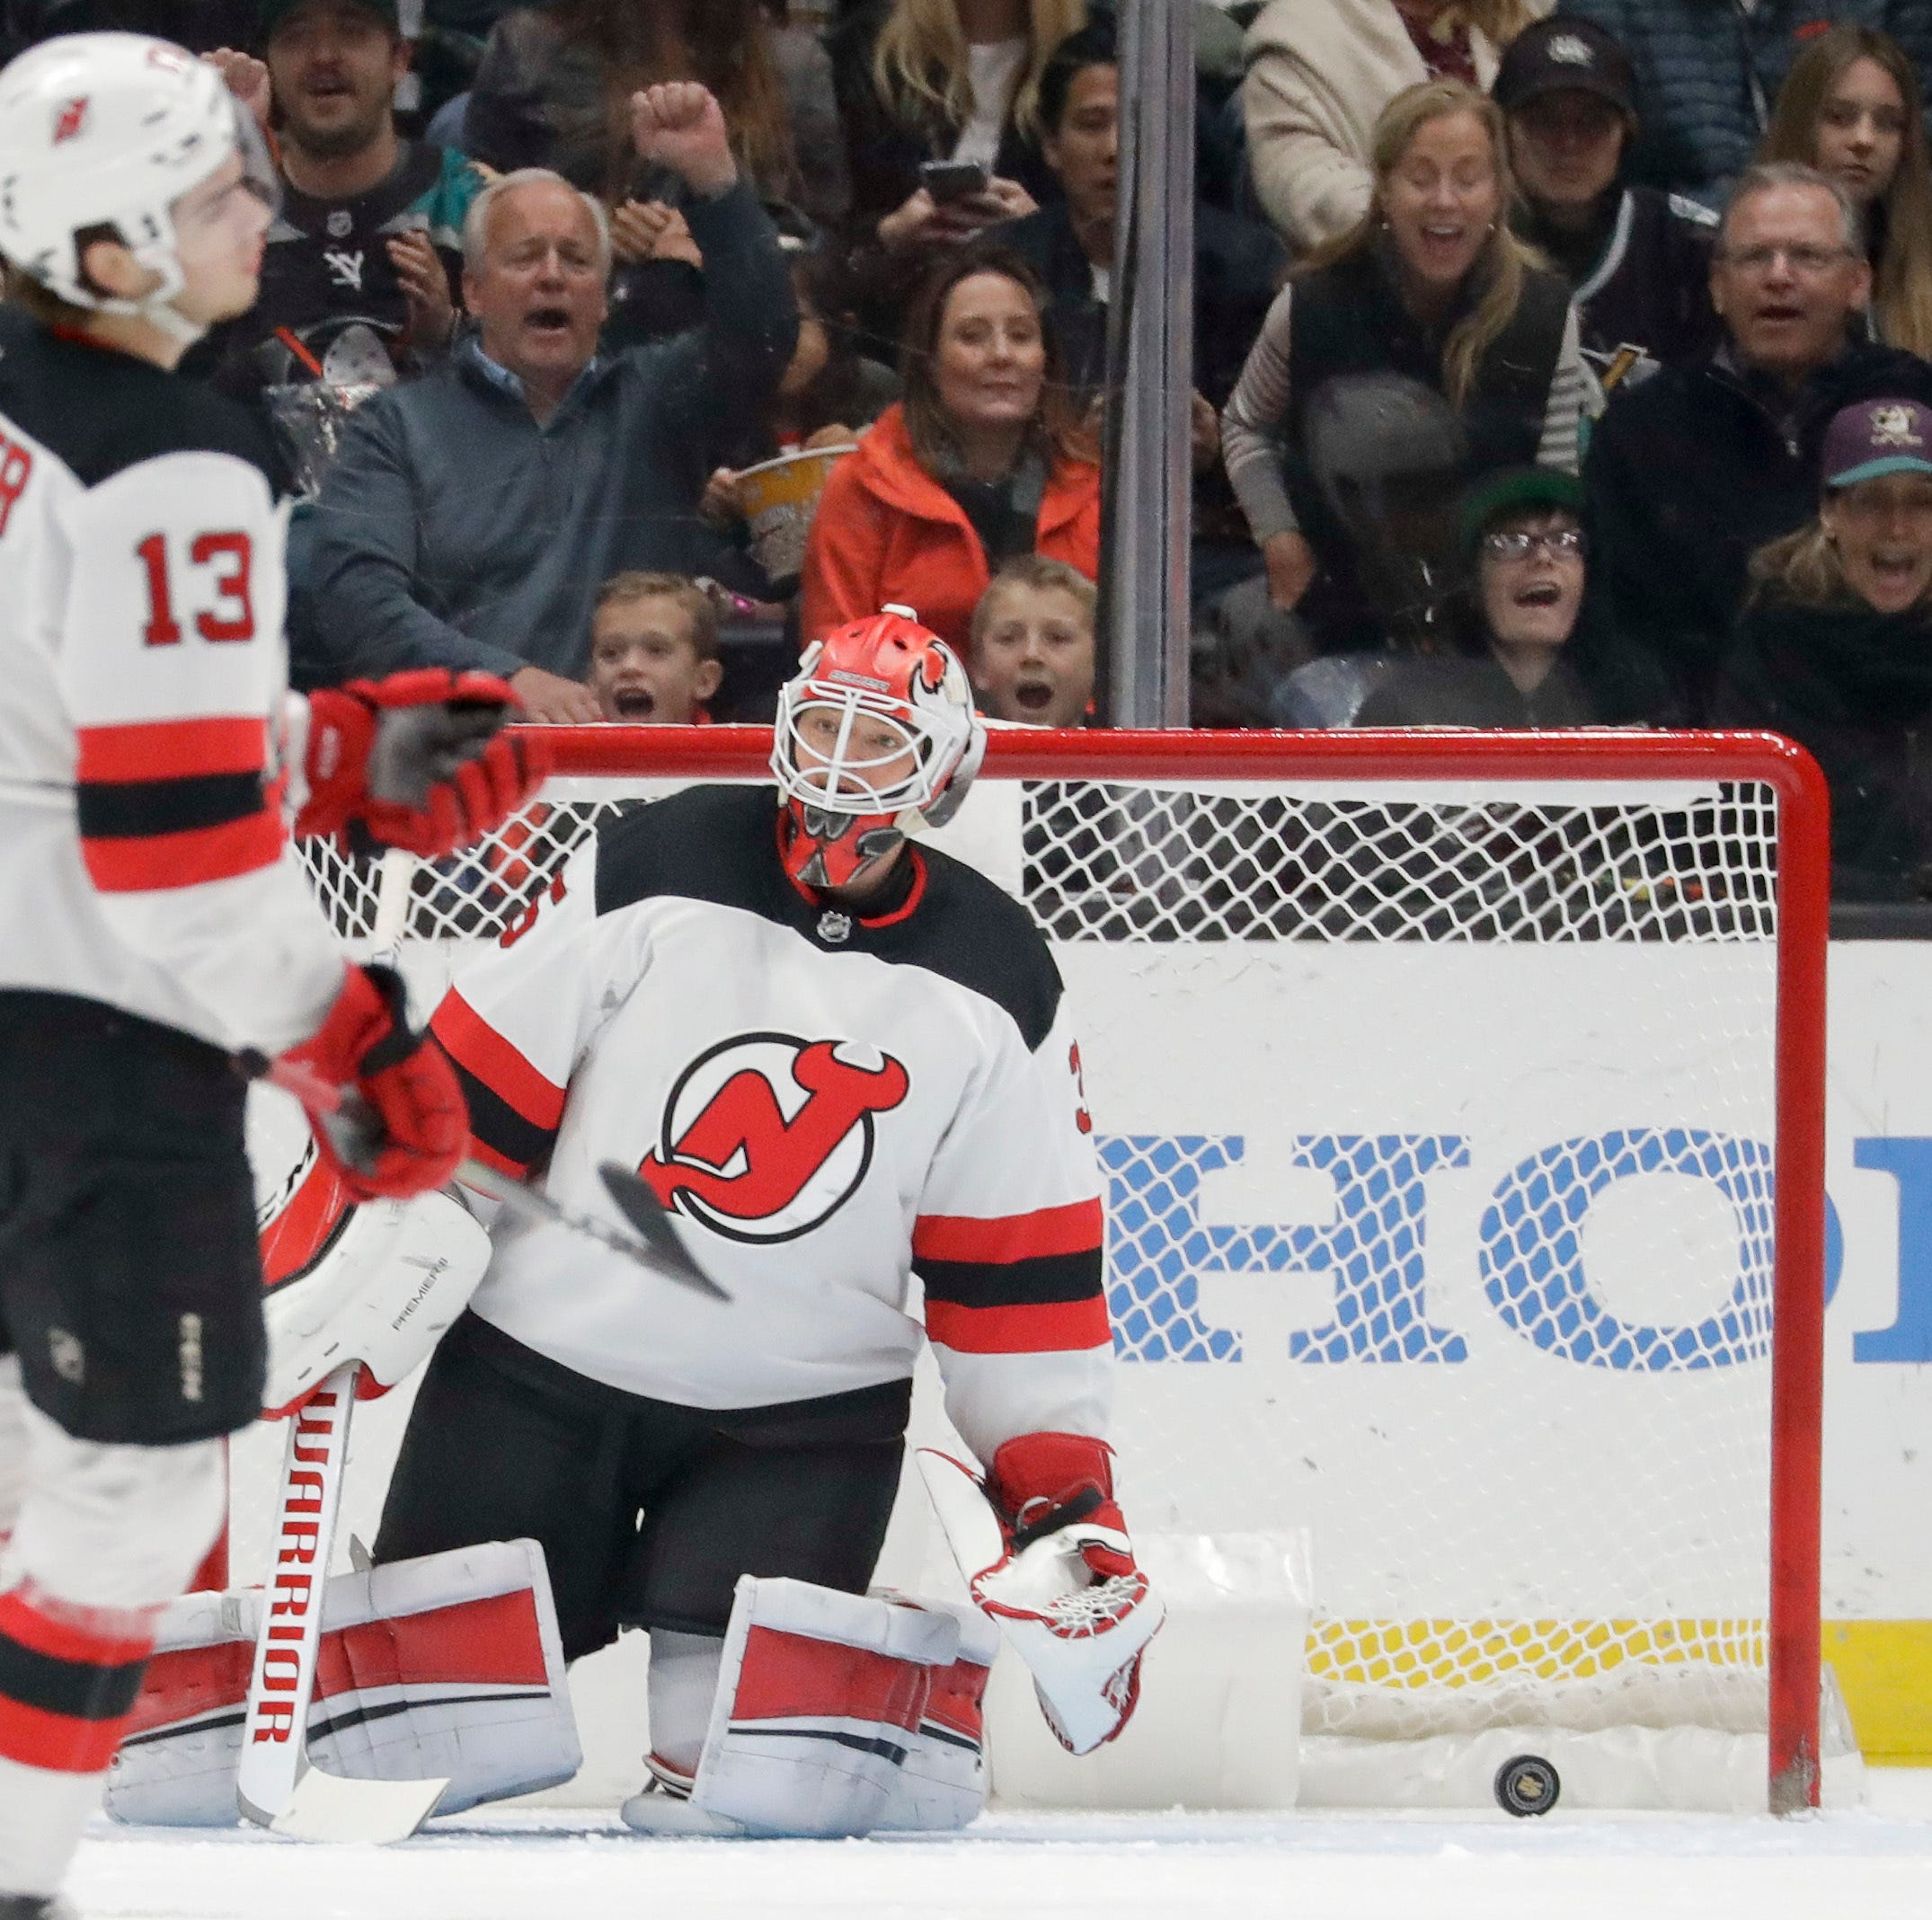 New Jersey Devils goaltender Cory Schneider and Nico Hischier react after a goal by Anaheim Ducks right wing Jakob Silfverberg during the first period.